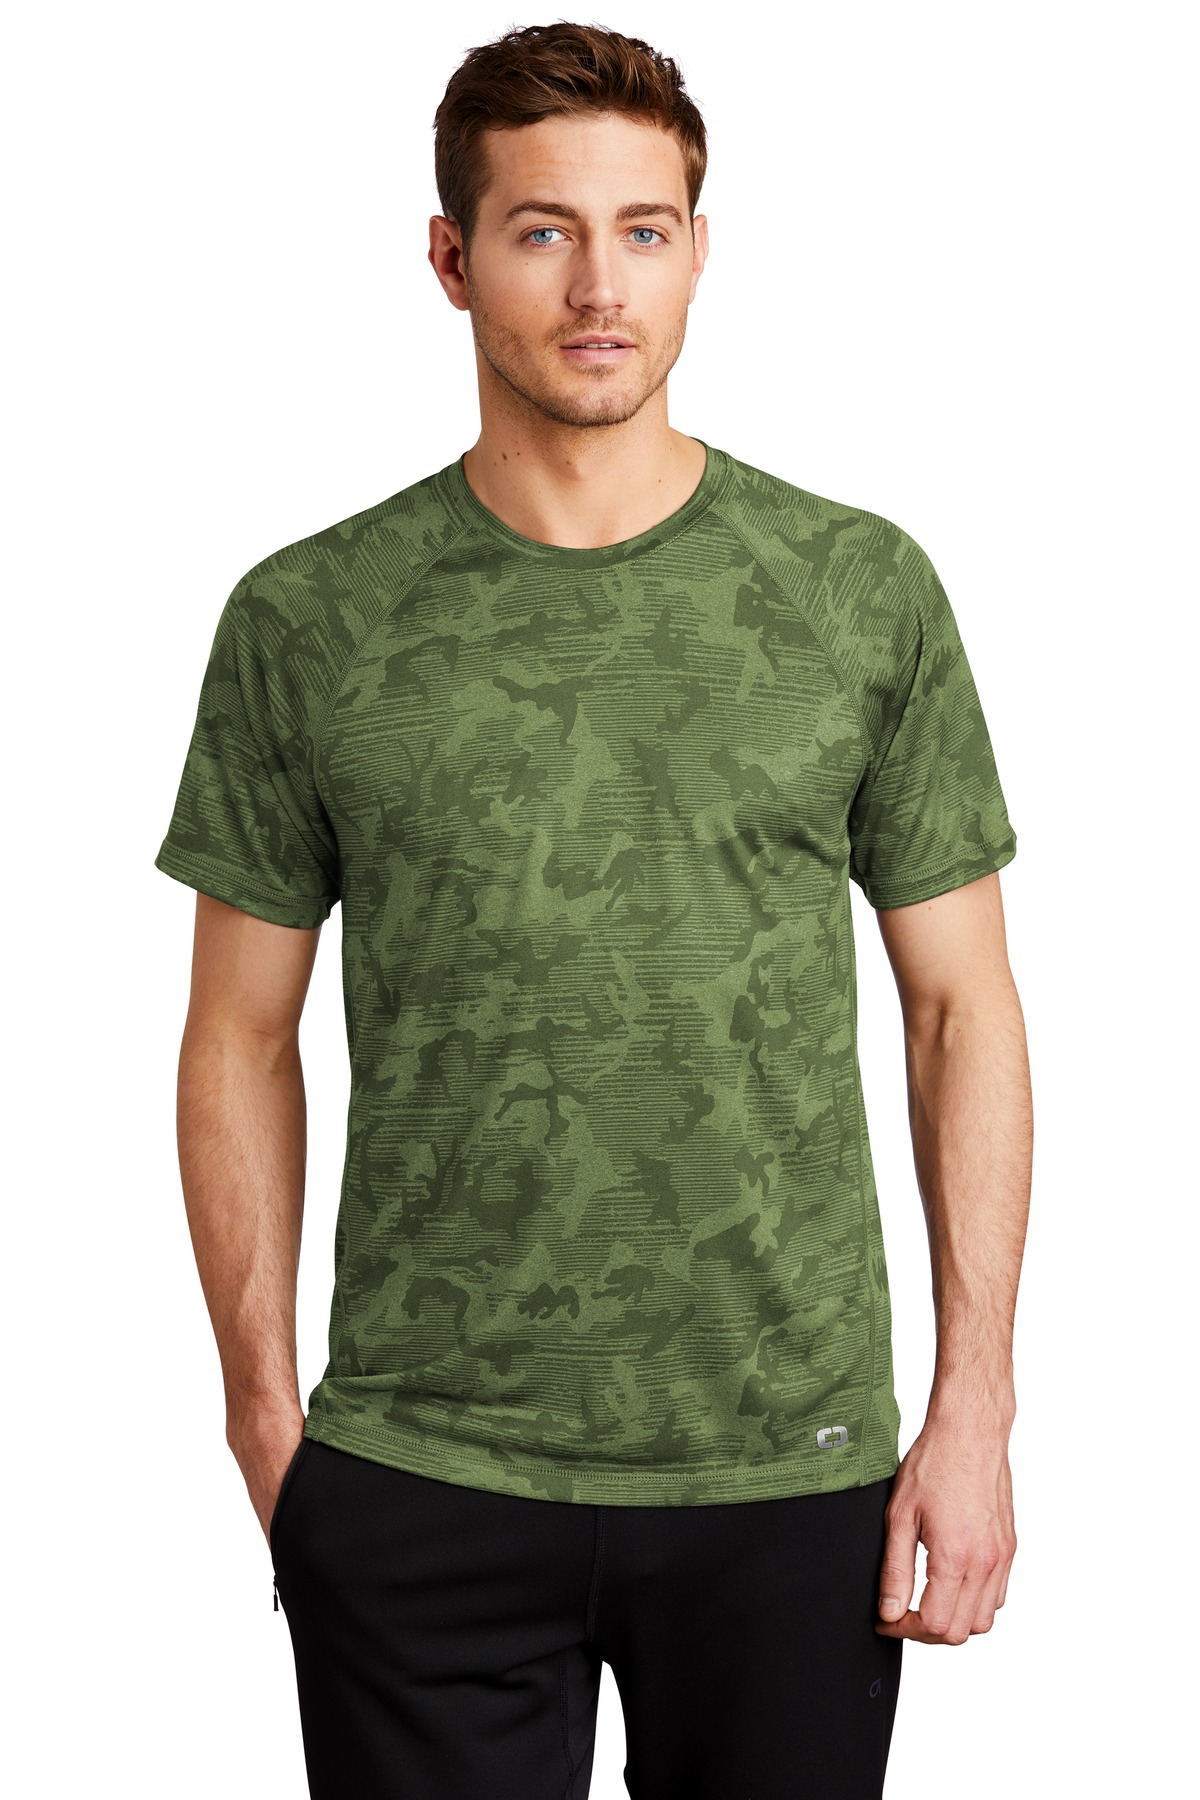 OGIO  ®  ENDURANCE Pulse Phantom Tee OE323 - Grit Green Camo